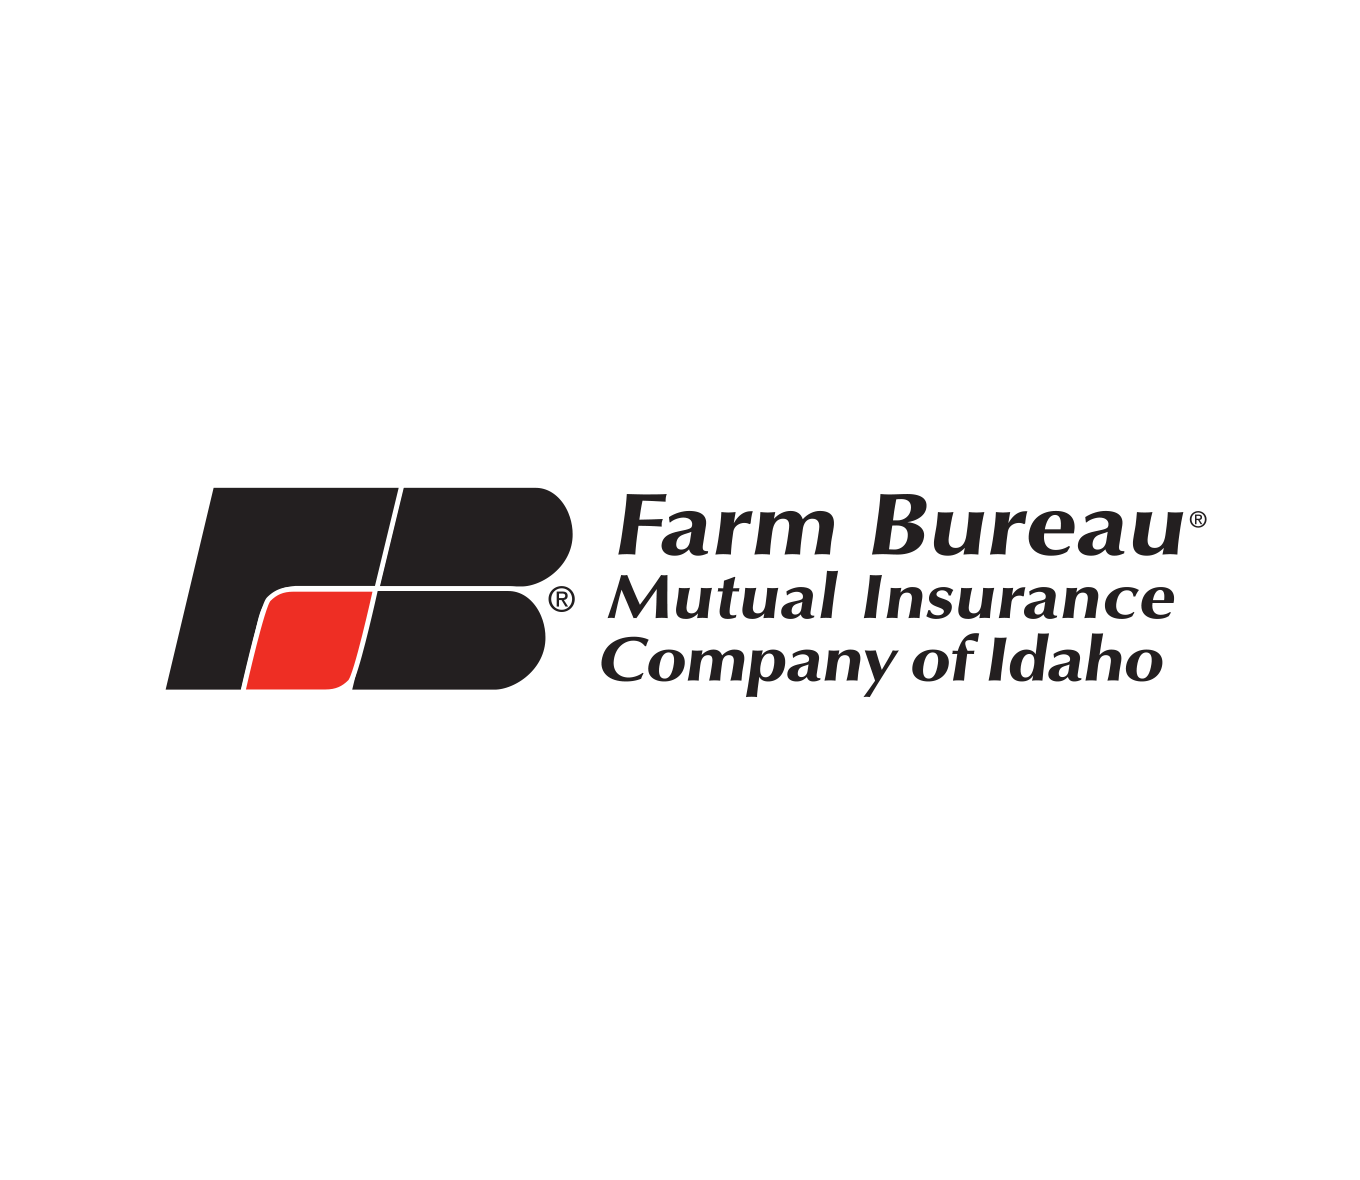 Farm Bureau Mutual Insurance Company of Idaho (FBM Idaho) Customer Logo